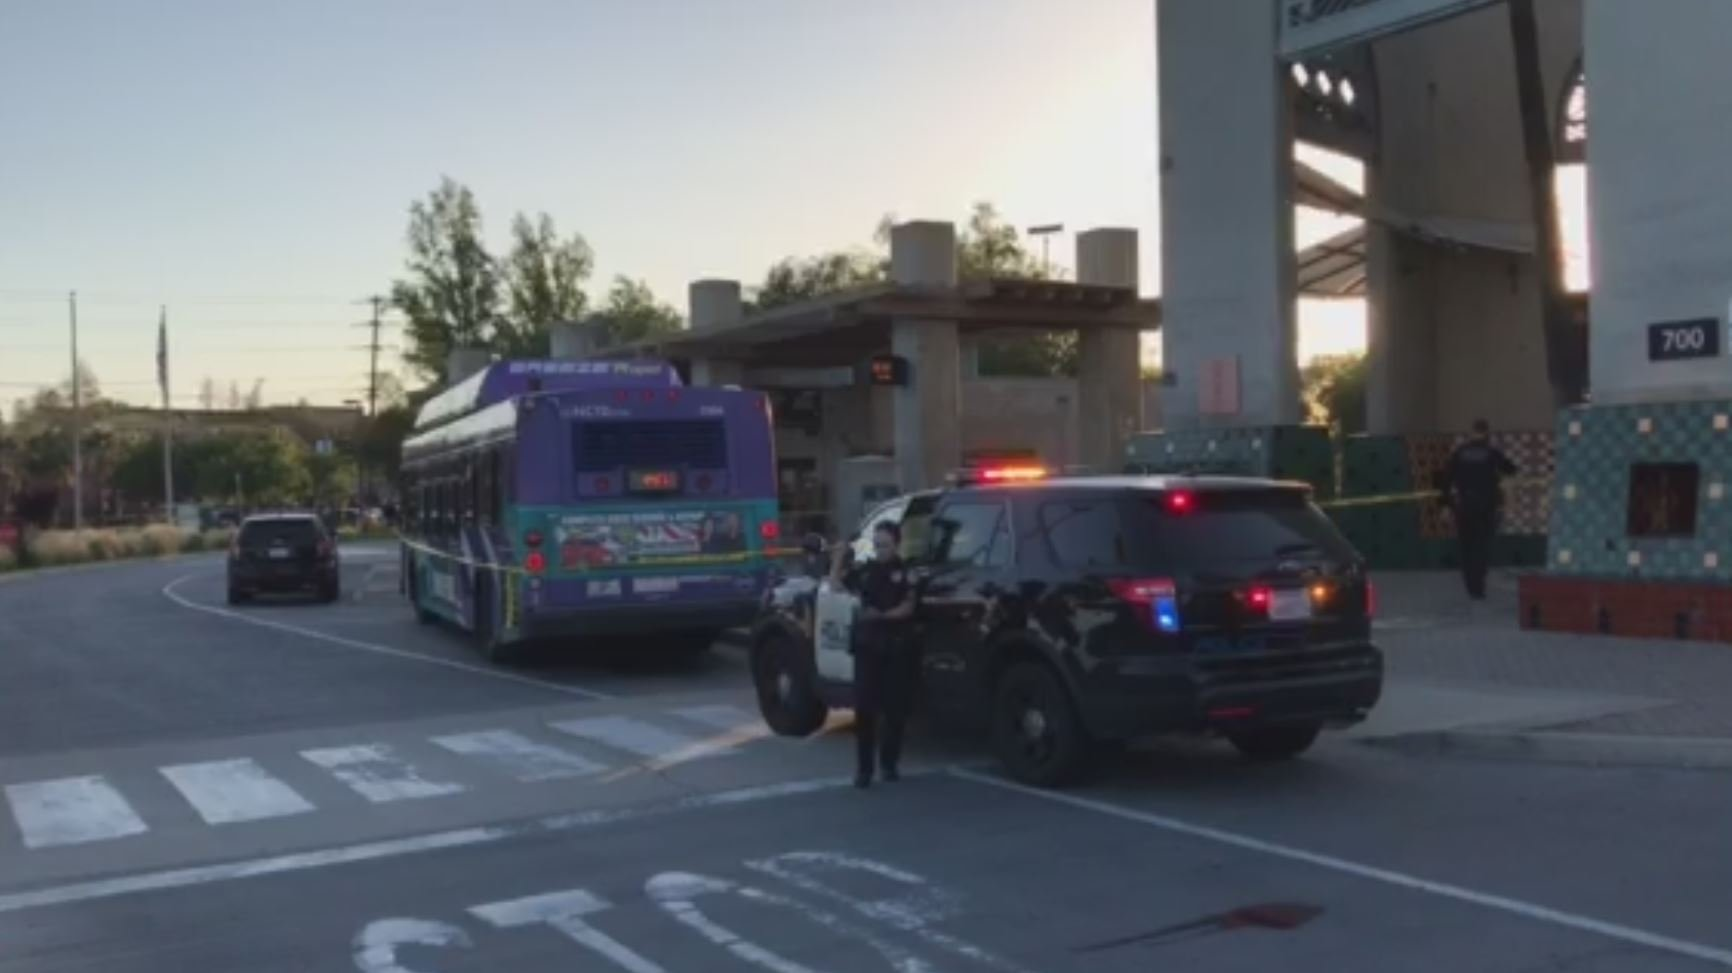 Man hospitalized after shots fired at bus near Escondido Transit Center